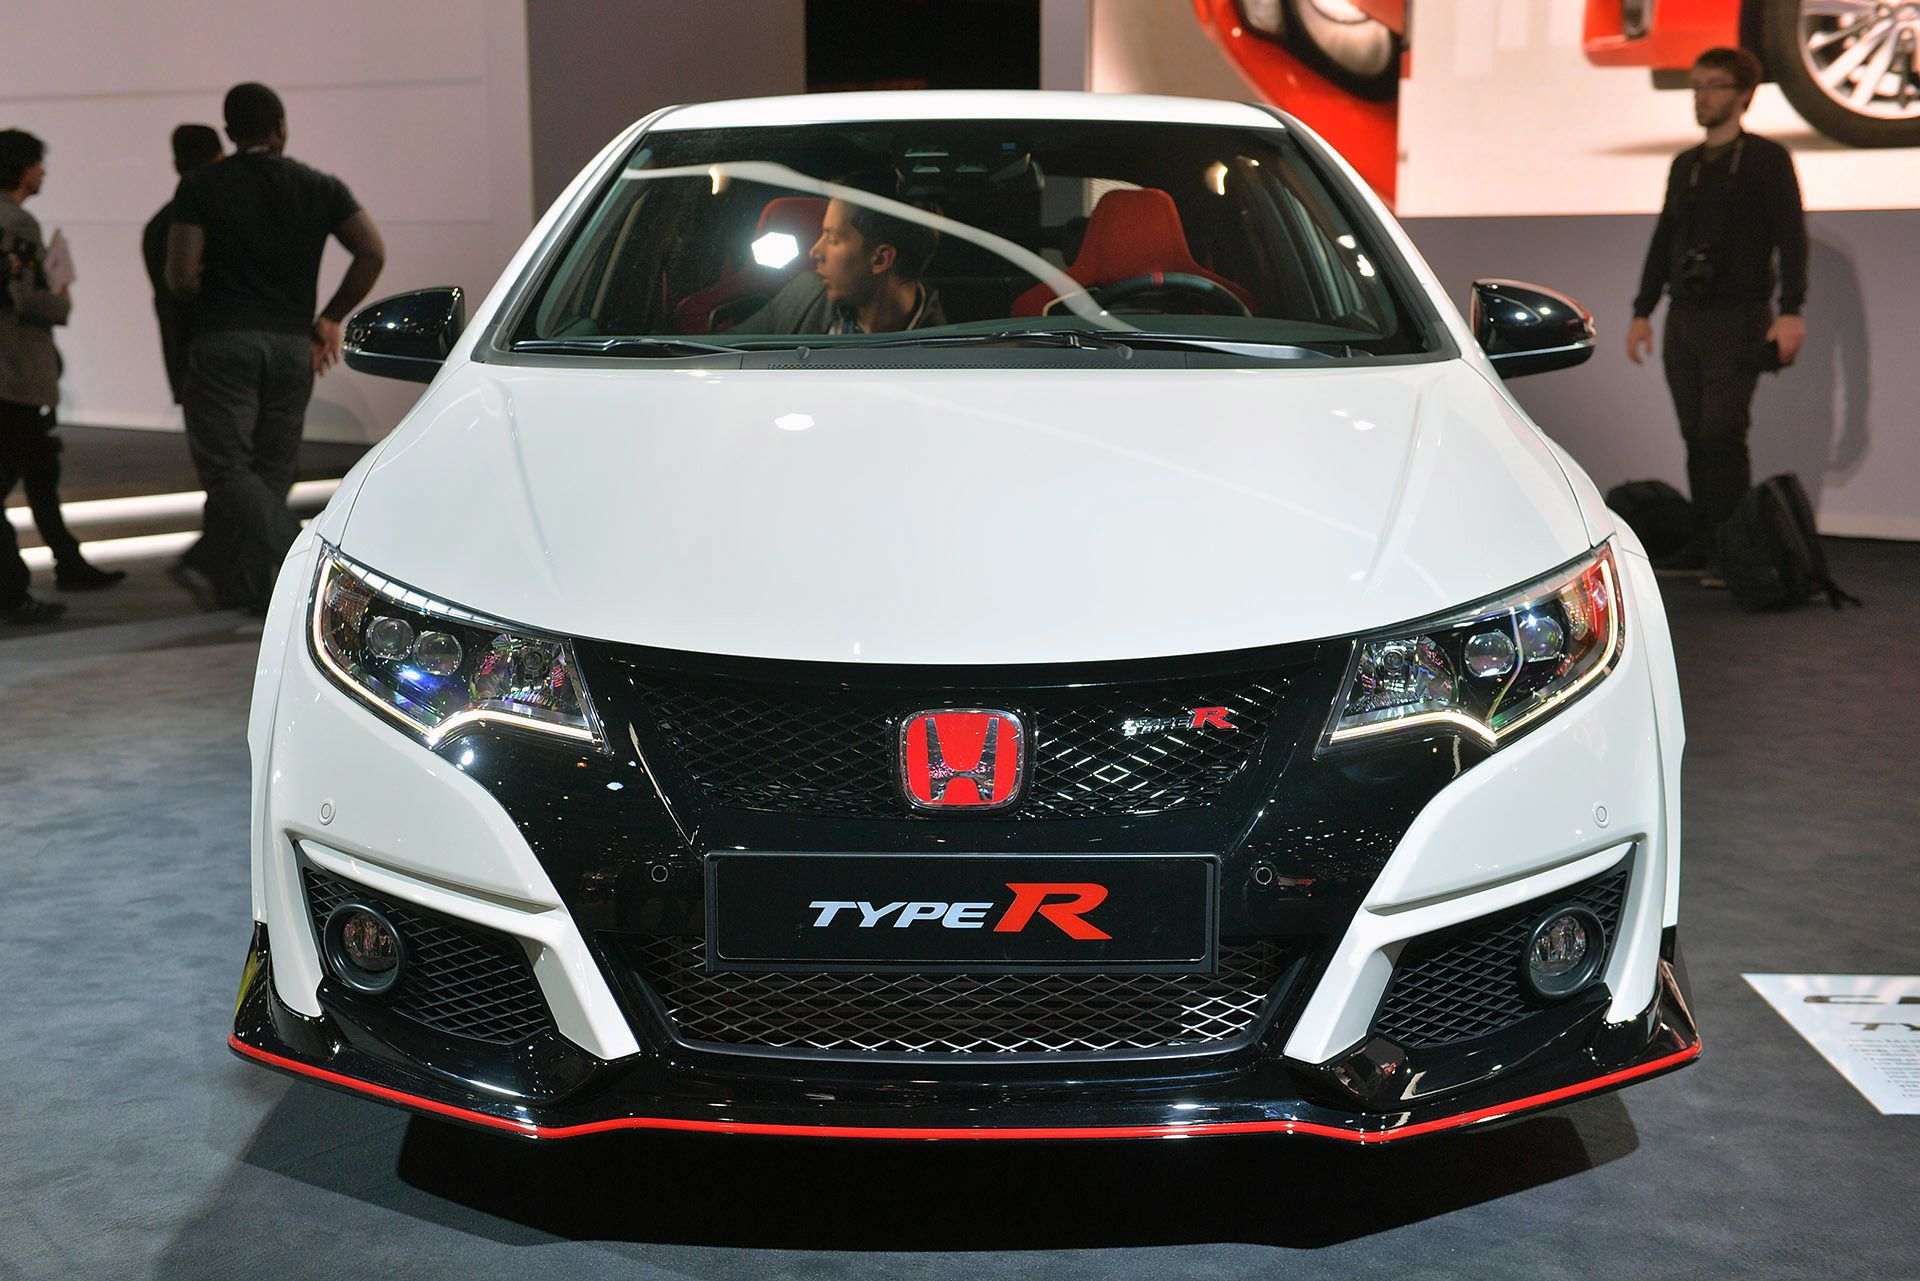 2017 Honda Civic Type R Specs And Price Trends Http Pistoncars